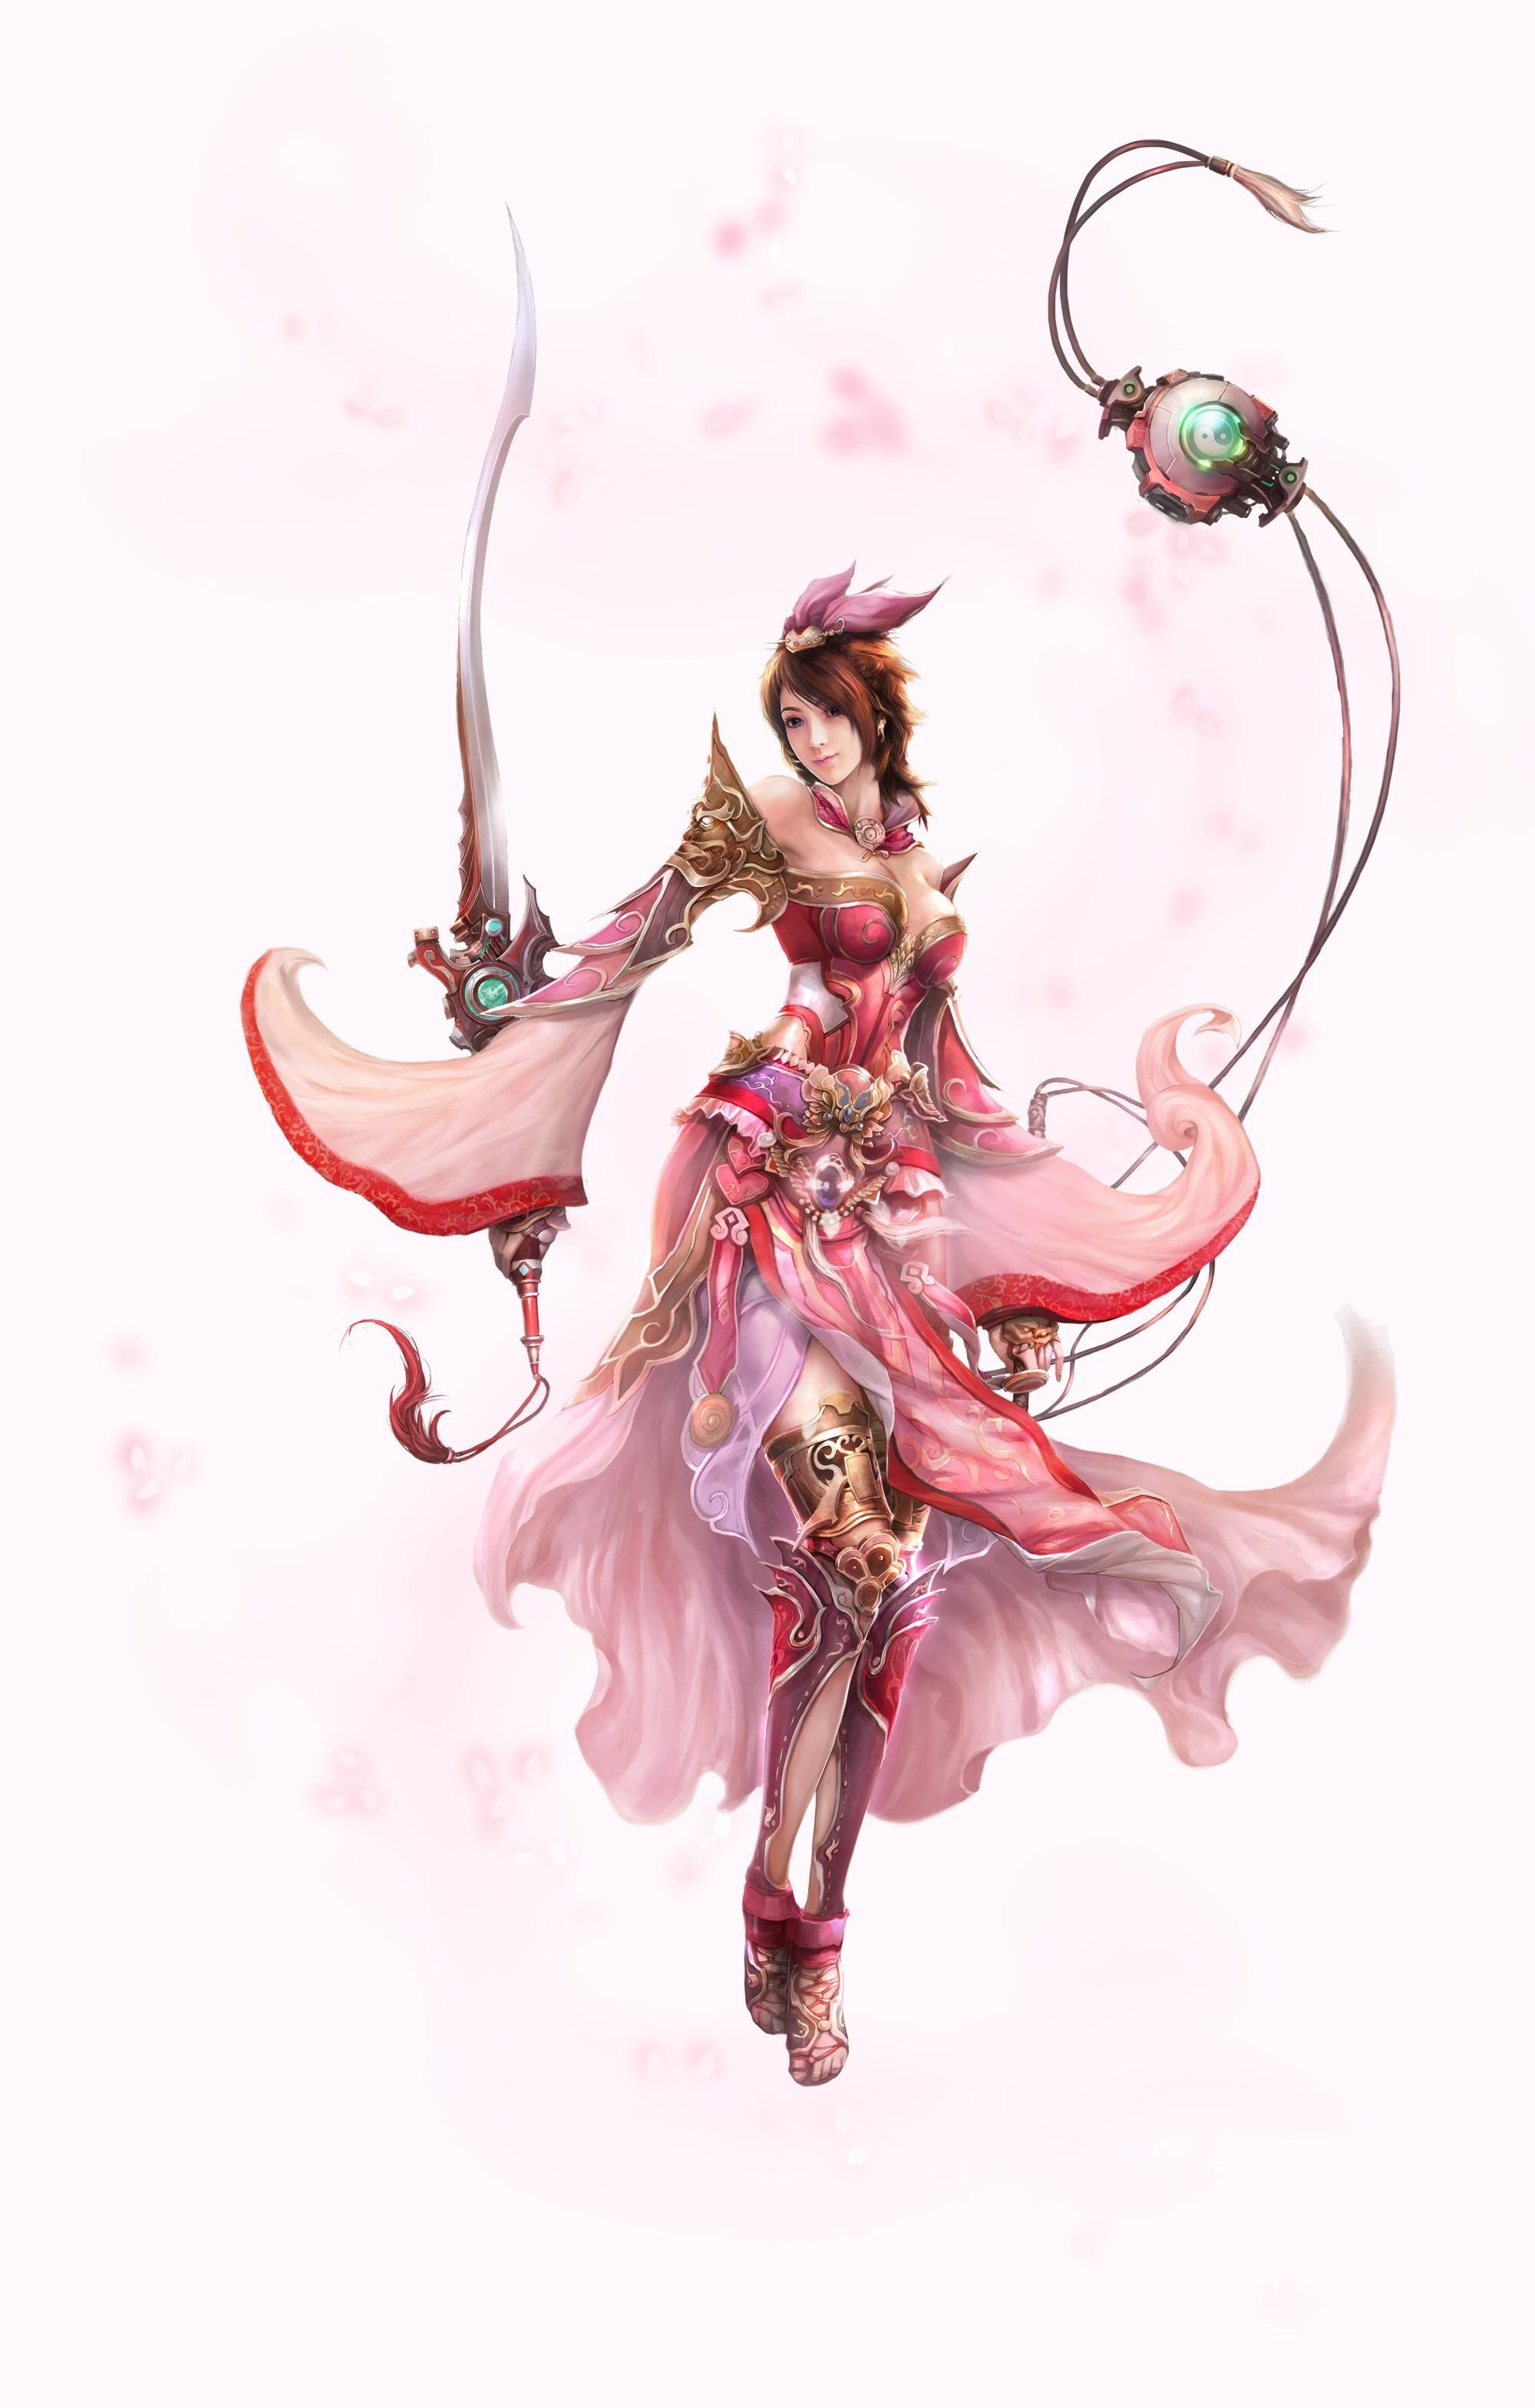 dress weapons blade fantasy HD Wallpaper